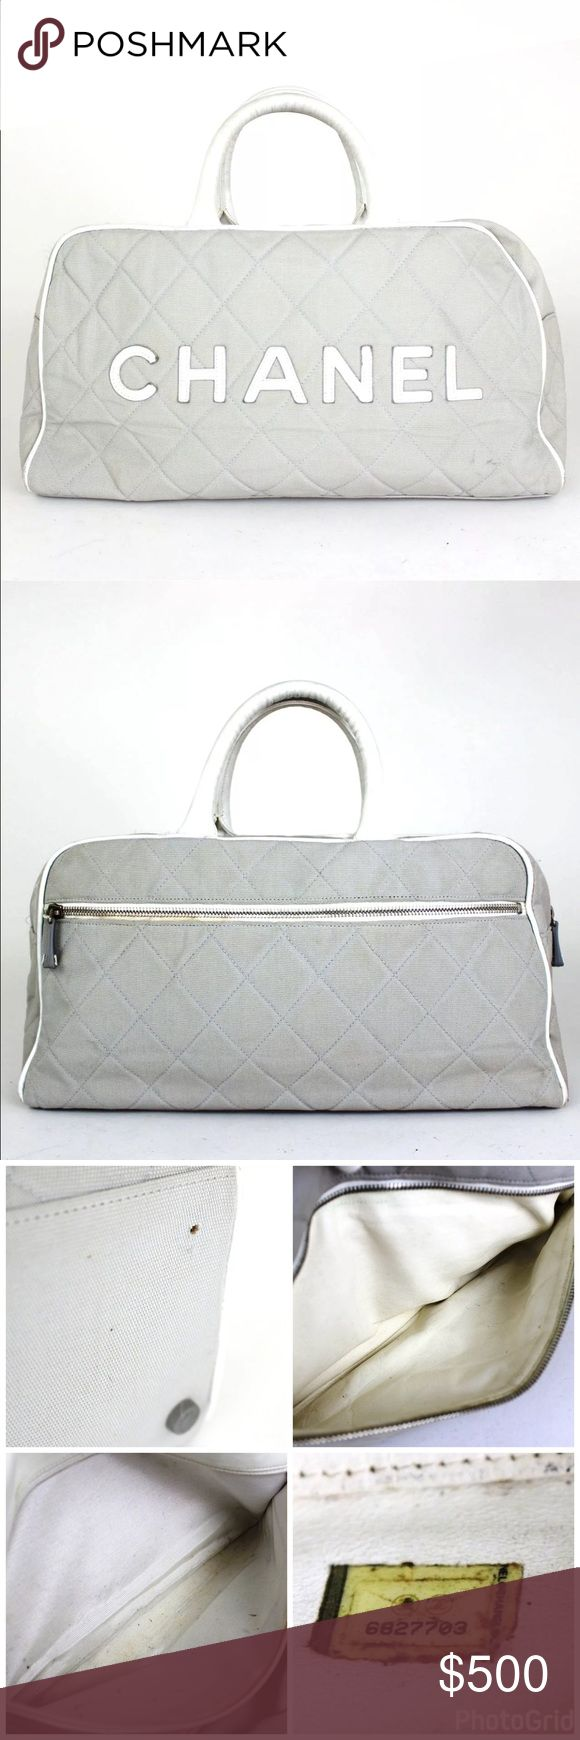 """CHANEL Mini Boston Bag, Hand Bag Brand: CHANEL  Item Description: Mini Boston Bag, Hand Bag  Made in: Italy  Material: Canvas, Leather  Color: Gray, White  Model: Sports Line   Serial number: 6827703  Size(cm): H 20cm W 37cm D11 cm  Size(inches): H 7.87"""" W 14.57"""" D 4.33""""  Handle size(cm): 27cm  Handle size(inches): 10.63""""  Attachment: None CHANEL Bags Travel Bags"""